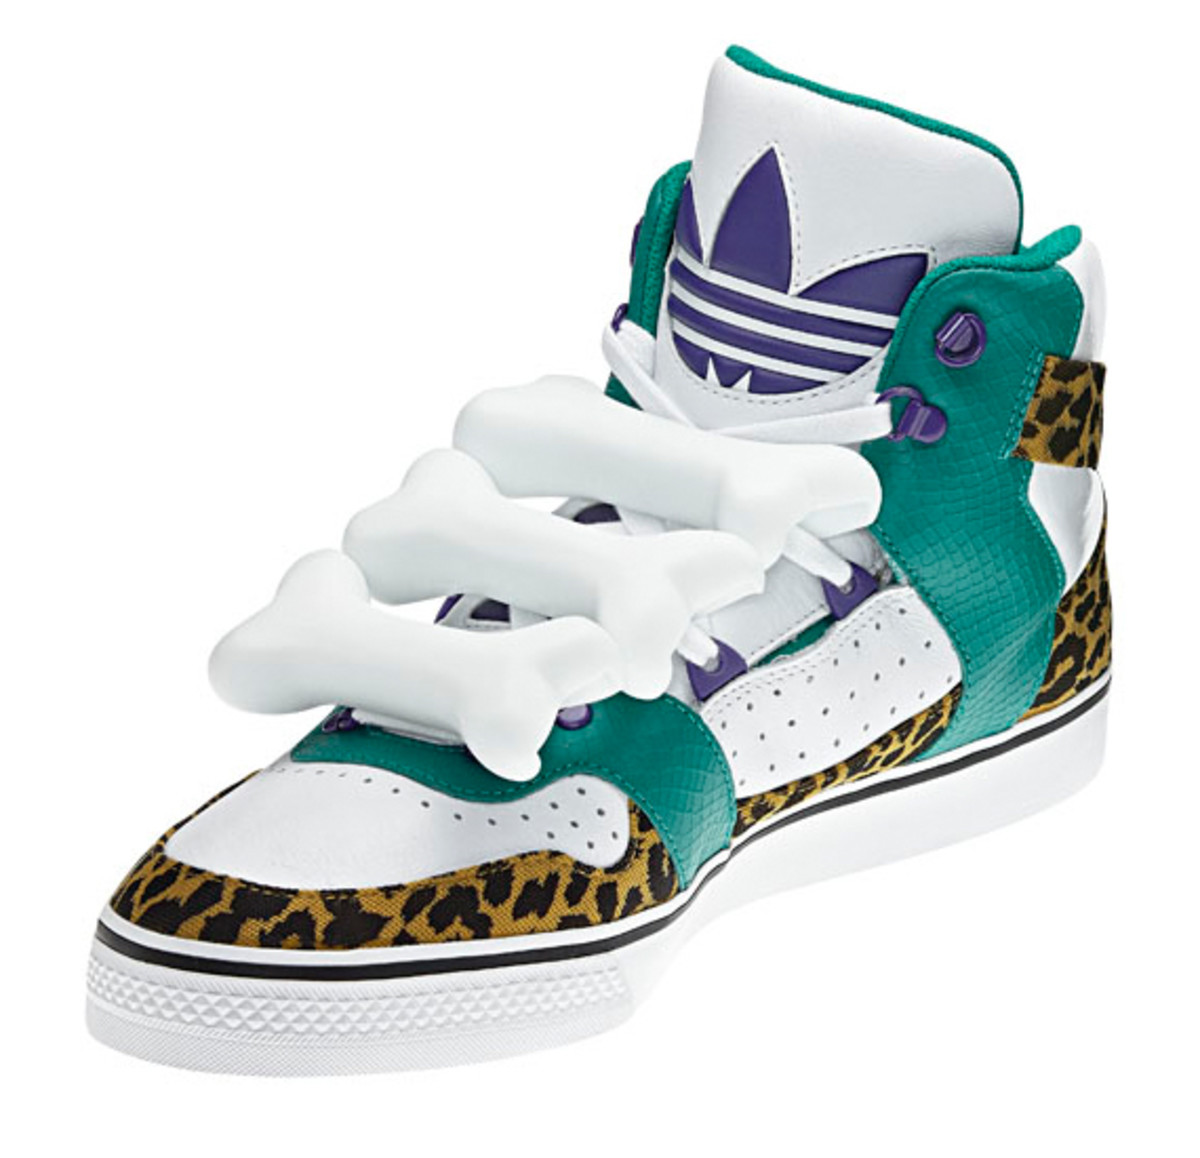 adidas-originals-by-jeremy-scott-august-2011-07